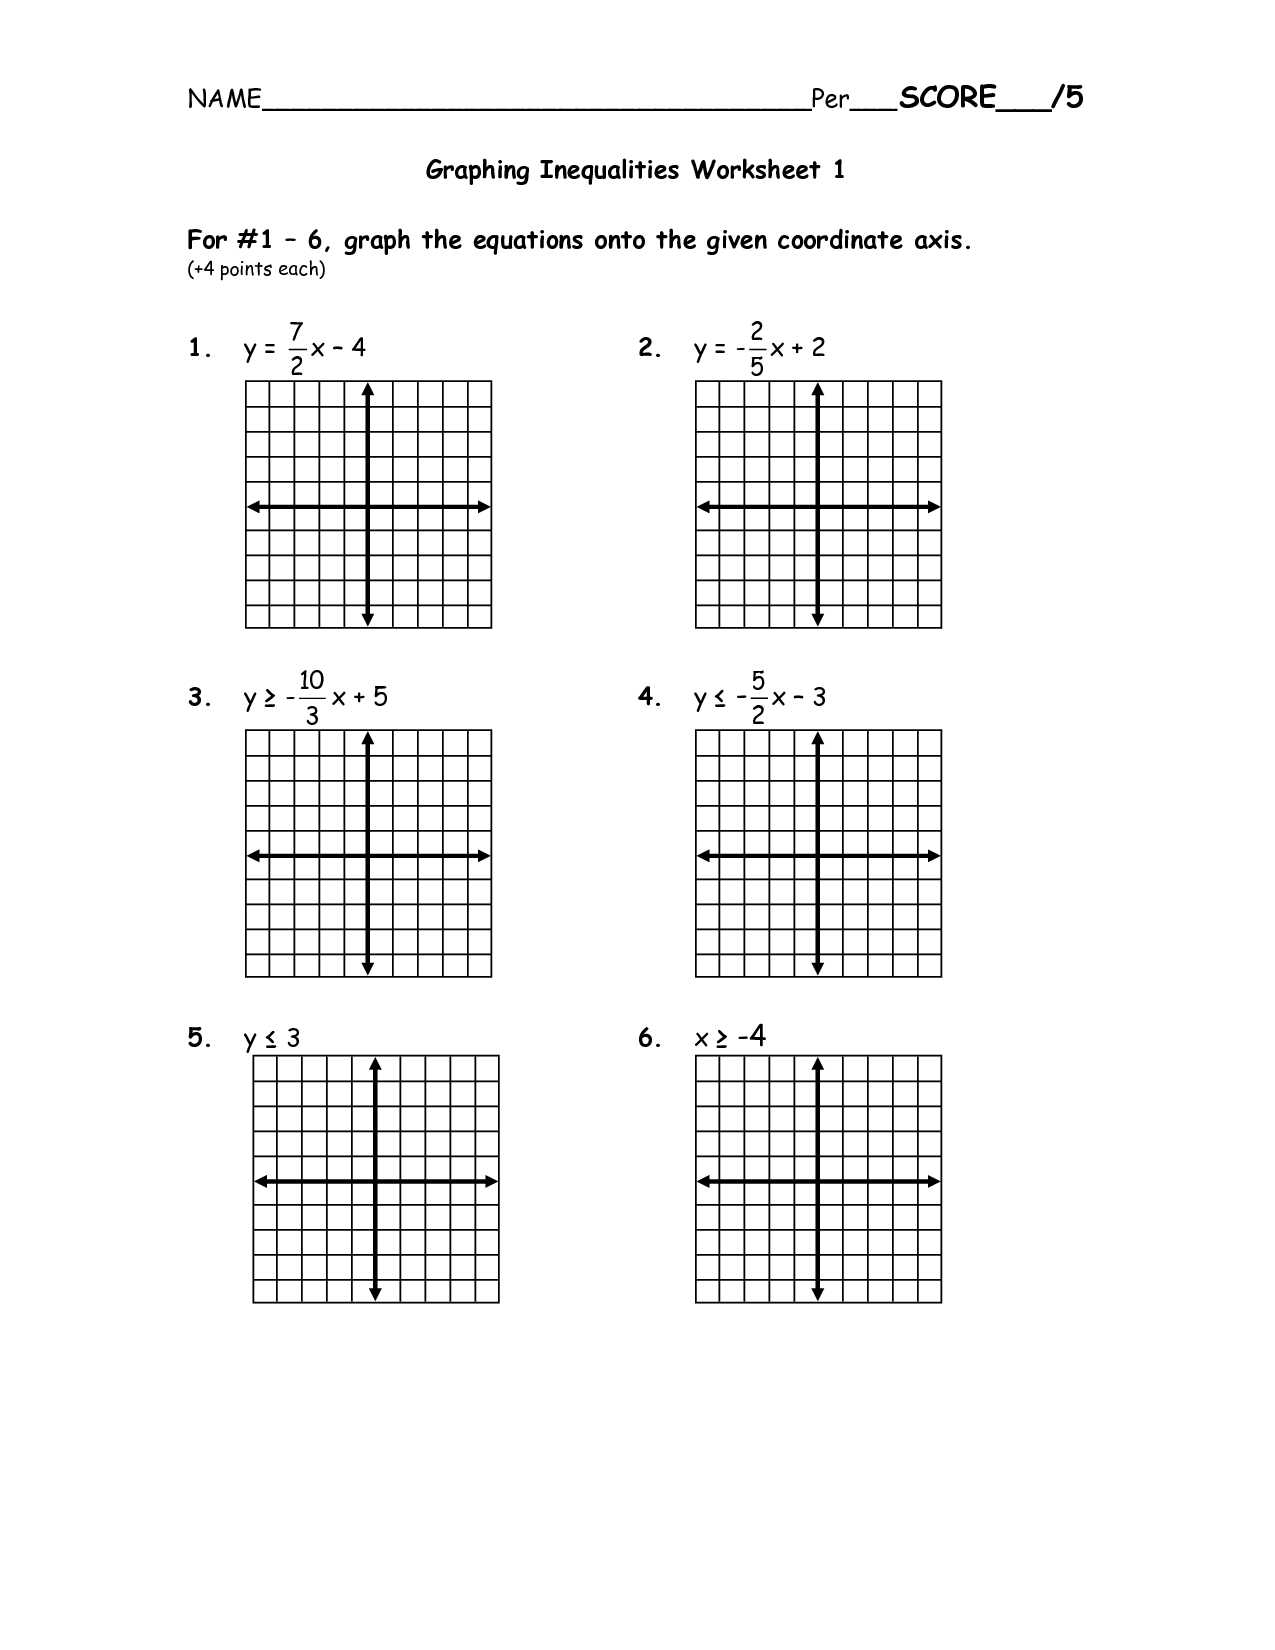 Graphing Linear Inequalities Worksheet - Promotiontablecovers